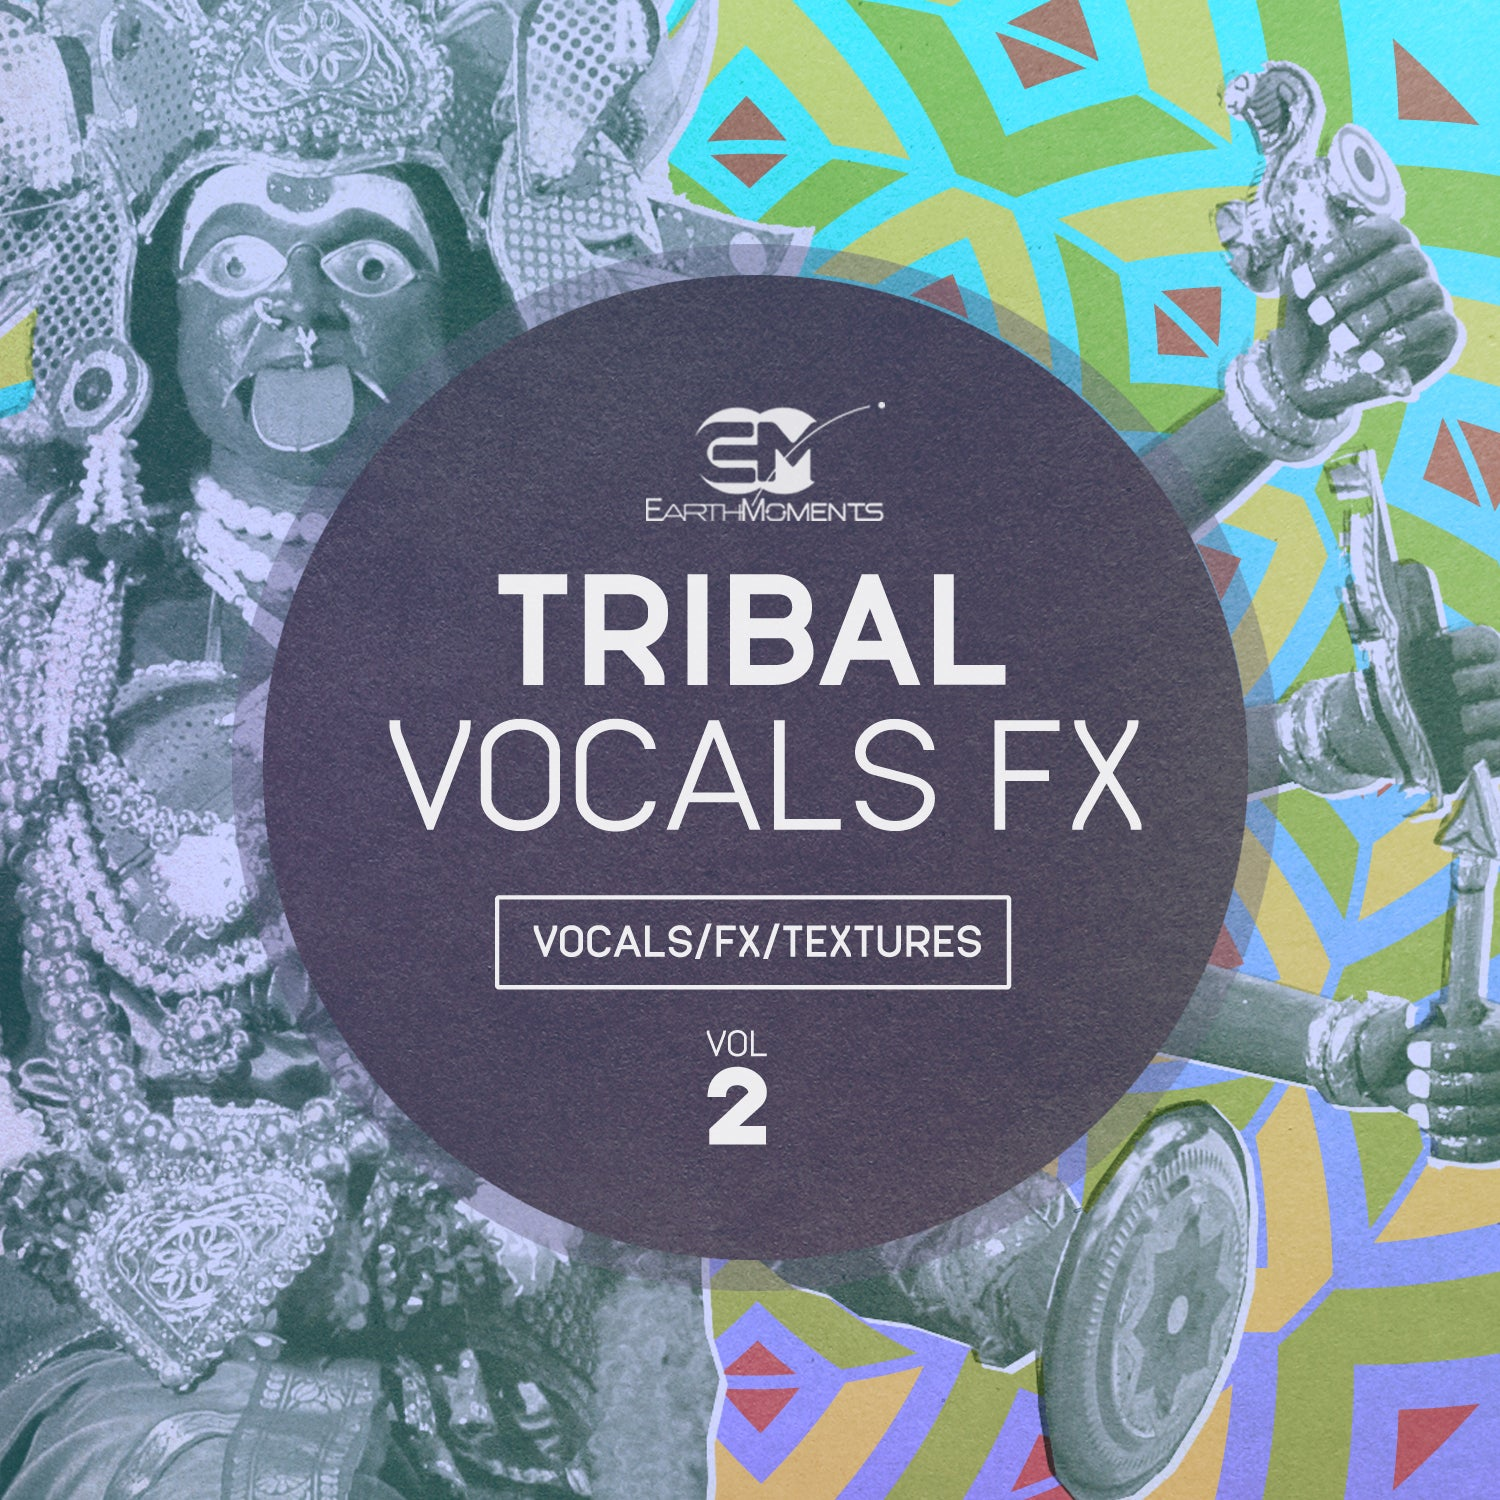 Tribal Vocal FX  - Vocals / FX / Textures - Vol. 02